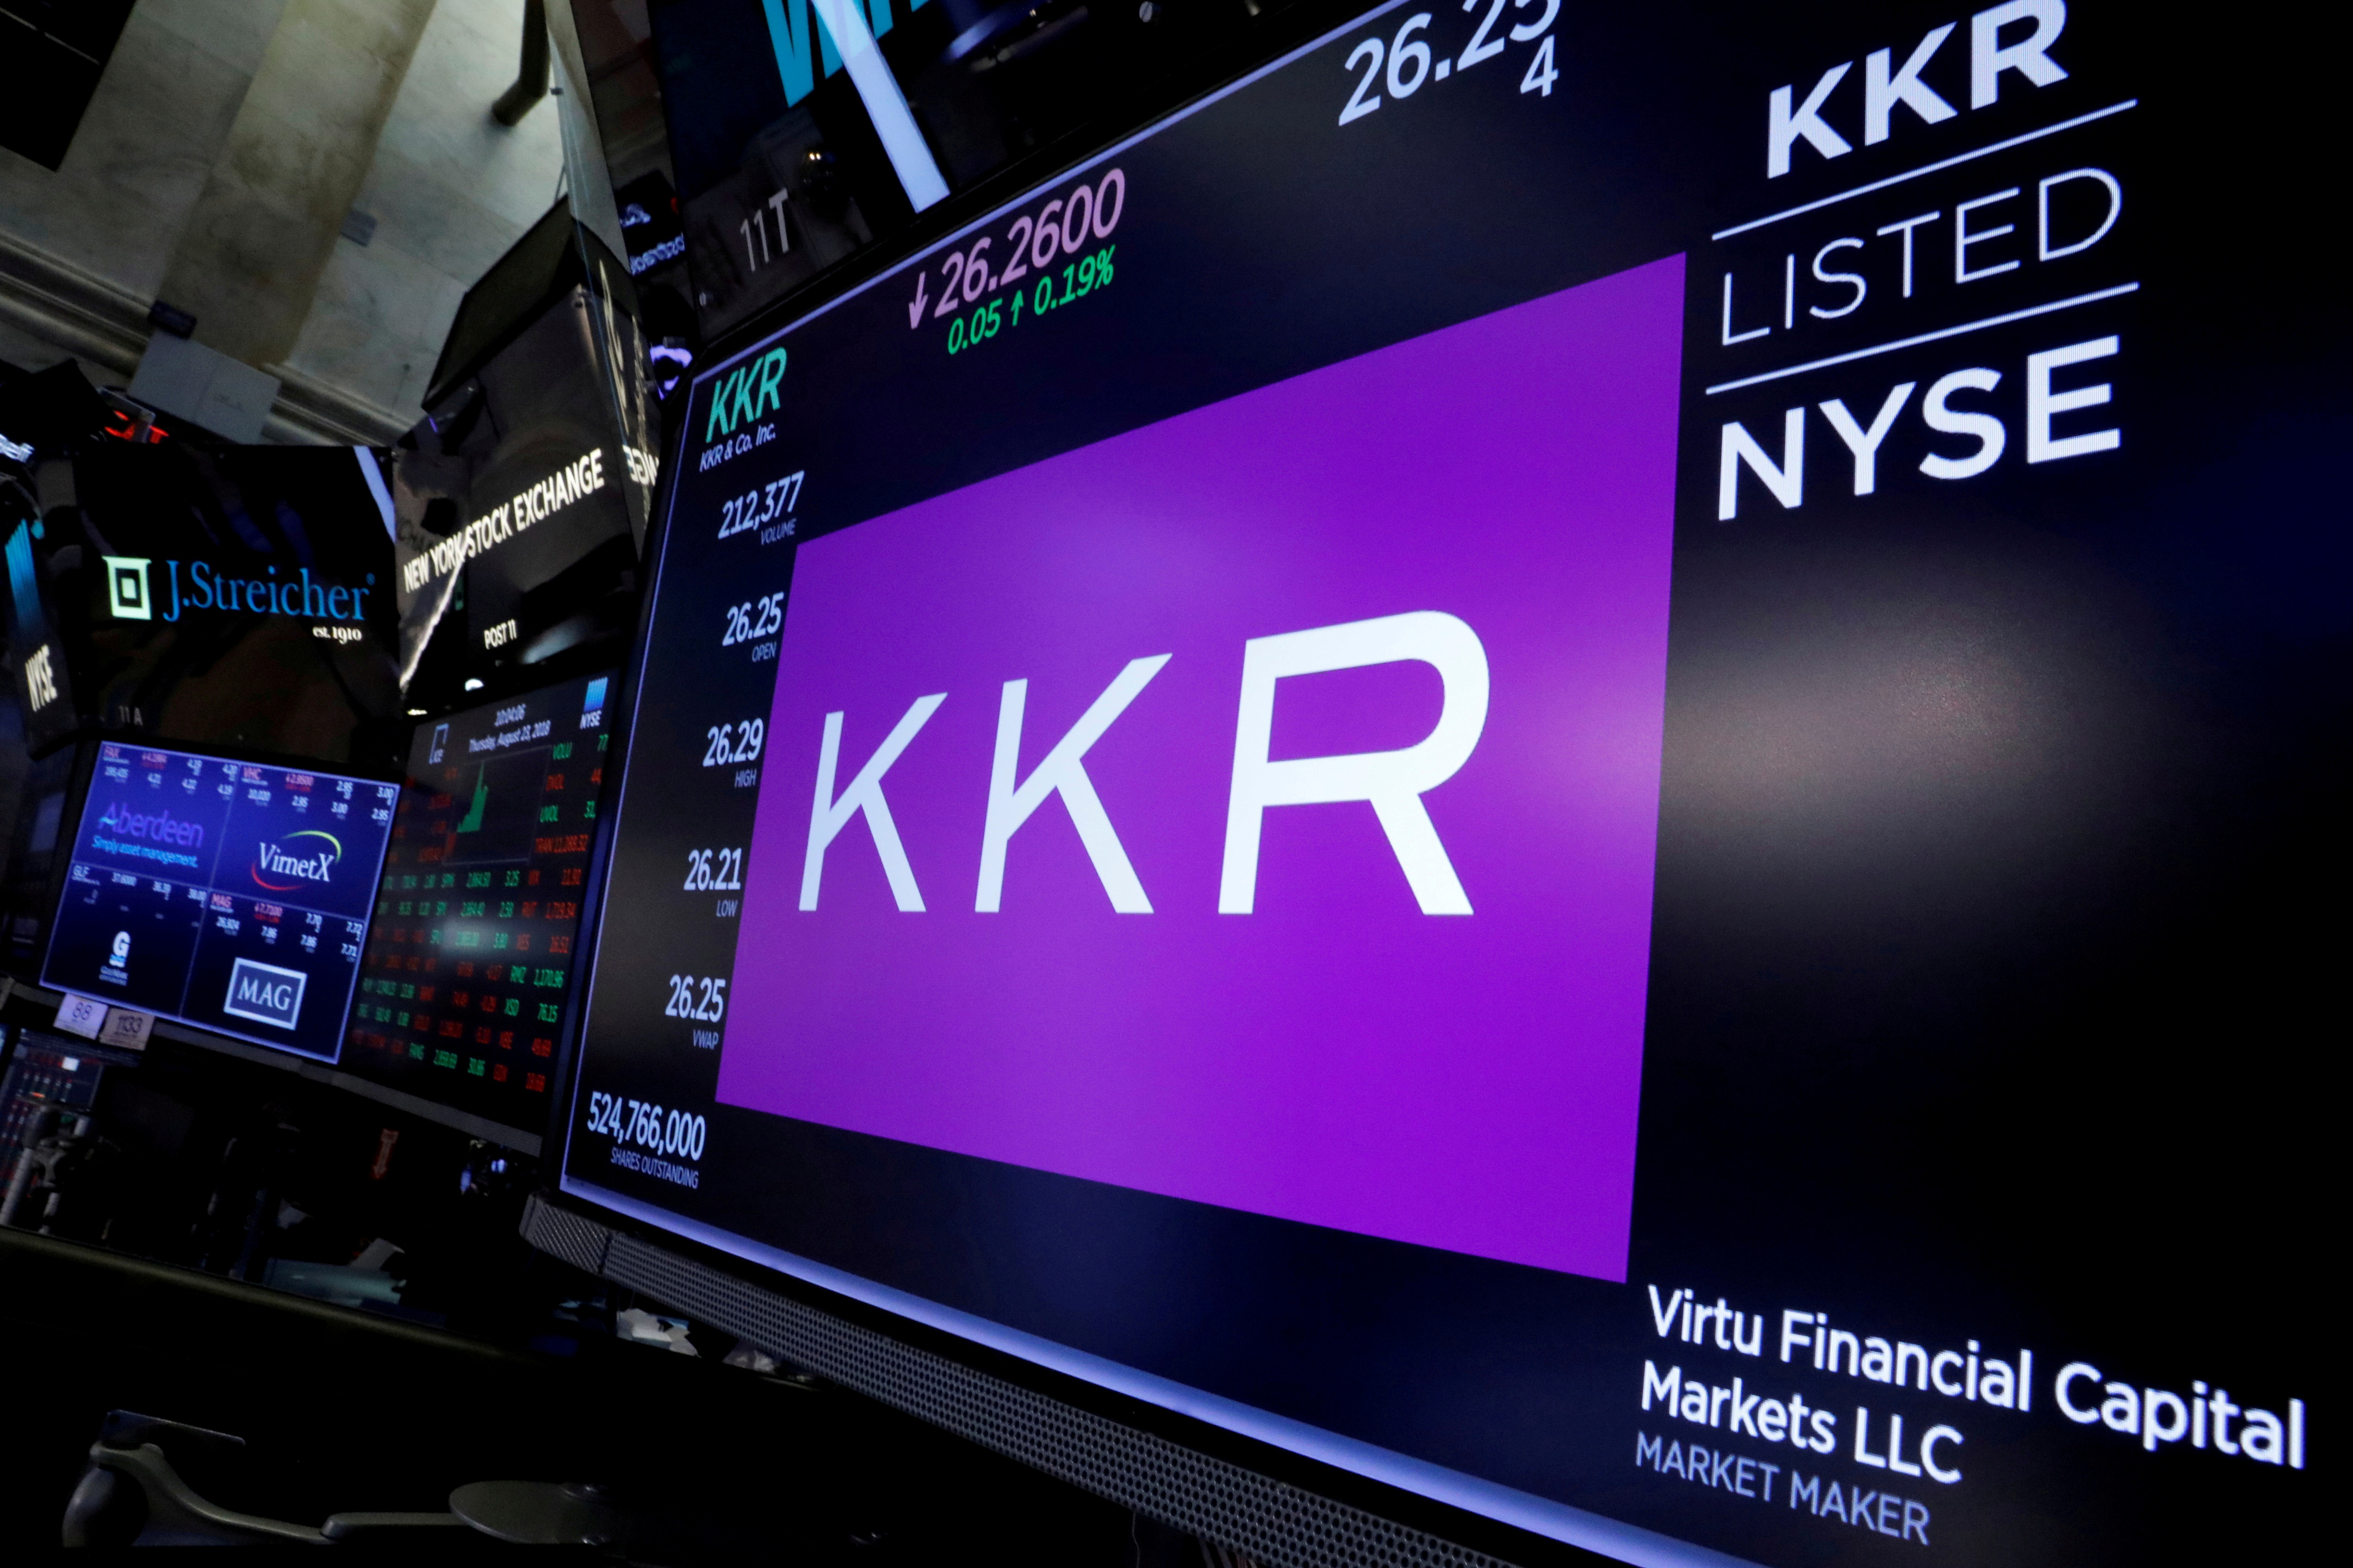 Trading information for KKR & Co is displayed on a screen on the floor of the New York Stock Exchange (NYSE) in New York, U.S., August 23, 2018. REUTERS/Brendan McDermid//File Photo